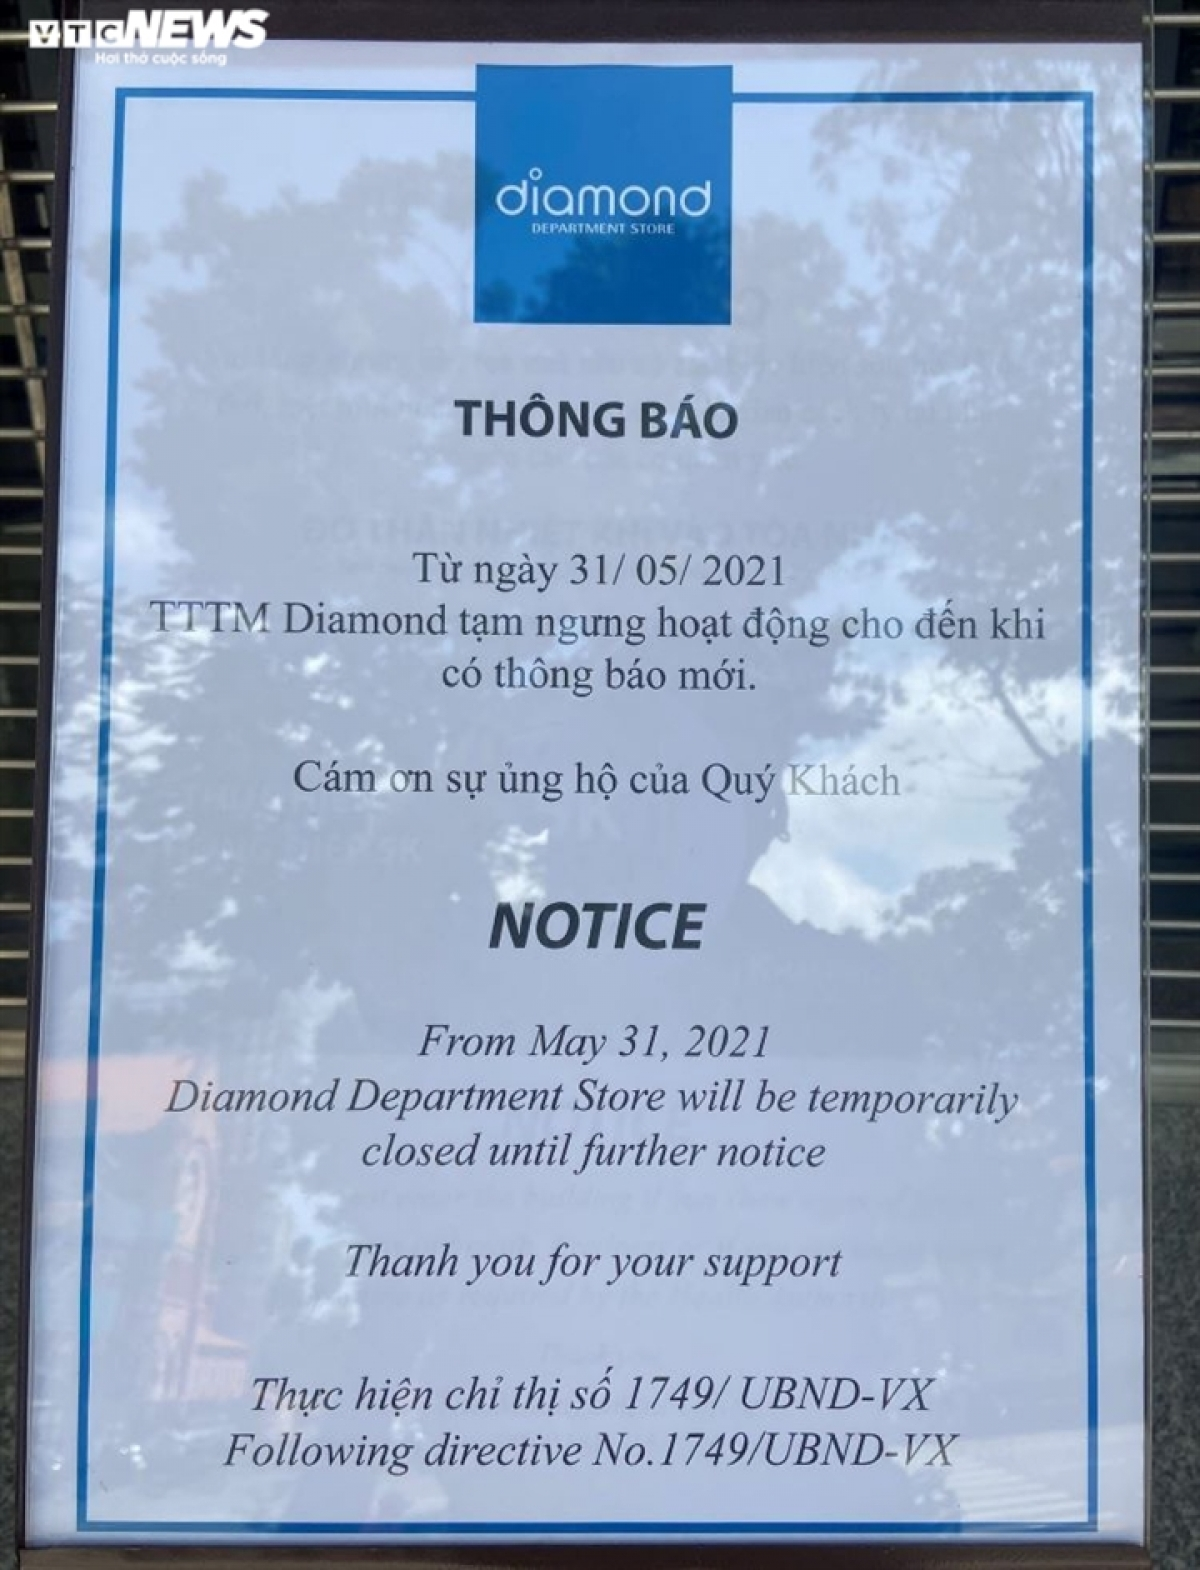 Diamond Department Store announces their temporary closure until further notice.